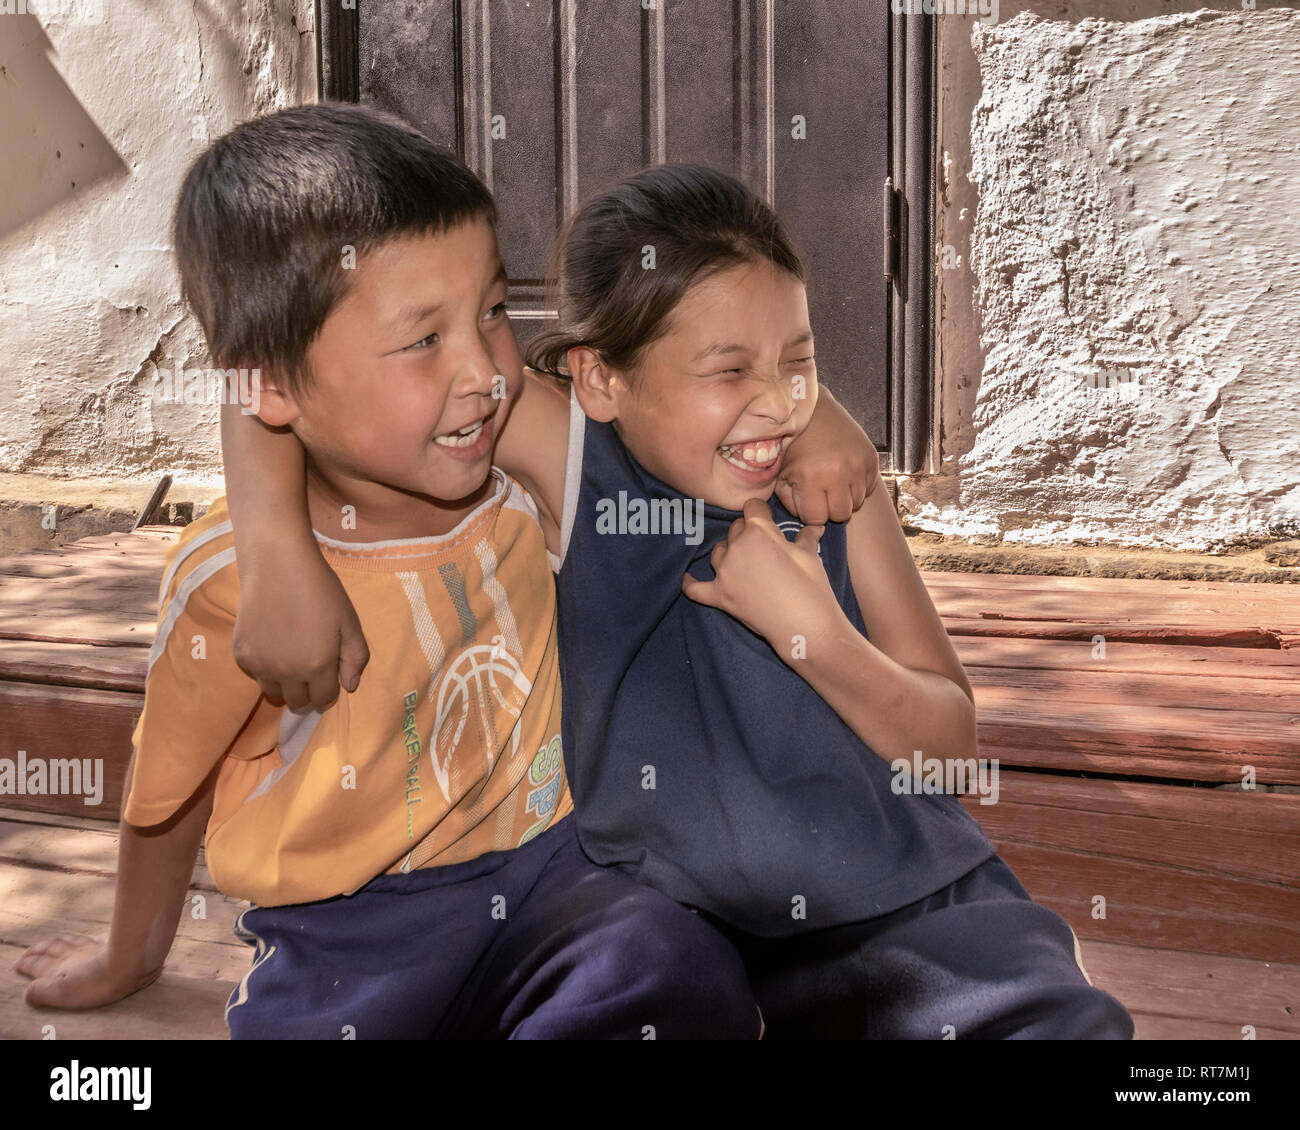 Kazakh brother and sister hamming it up on their front step, Altyn Emel Naitonal Park, Kazakhstan - Stock Image